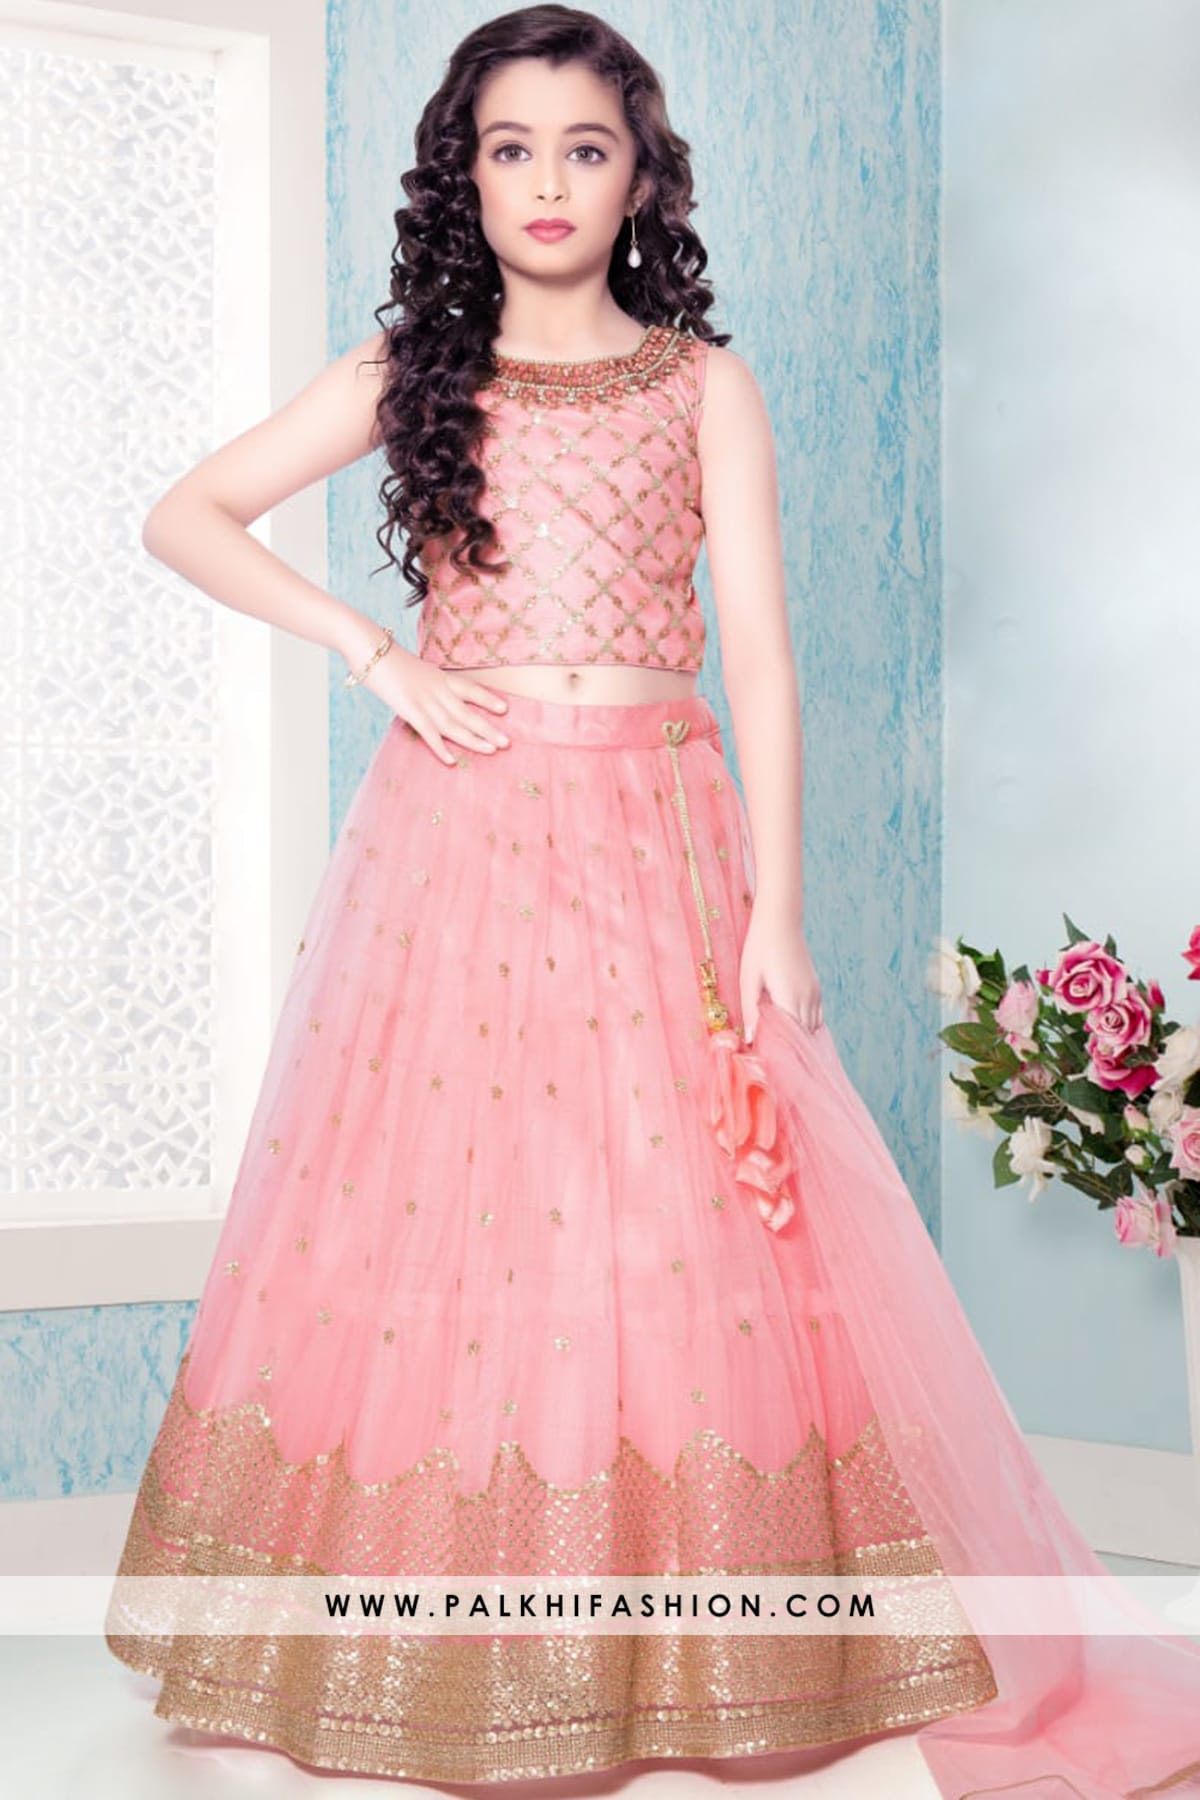 Pink Soft Net Girls Handwork Lehenga Set With Attractive Pattern